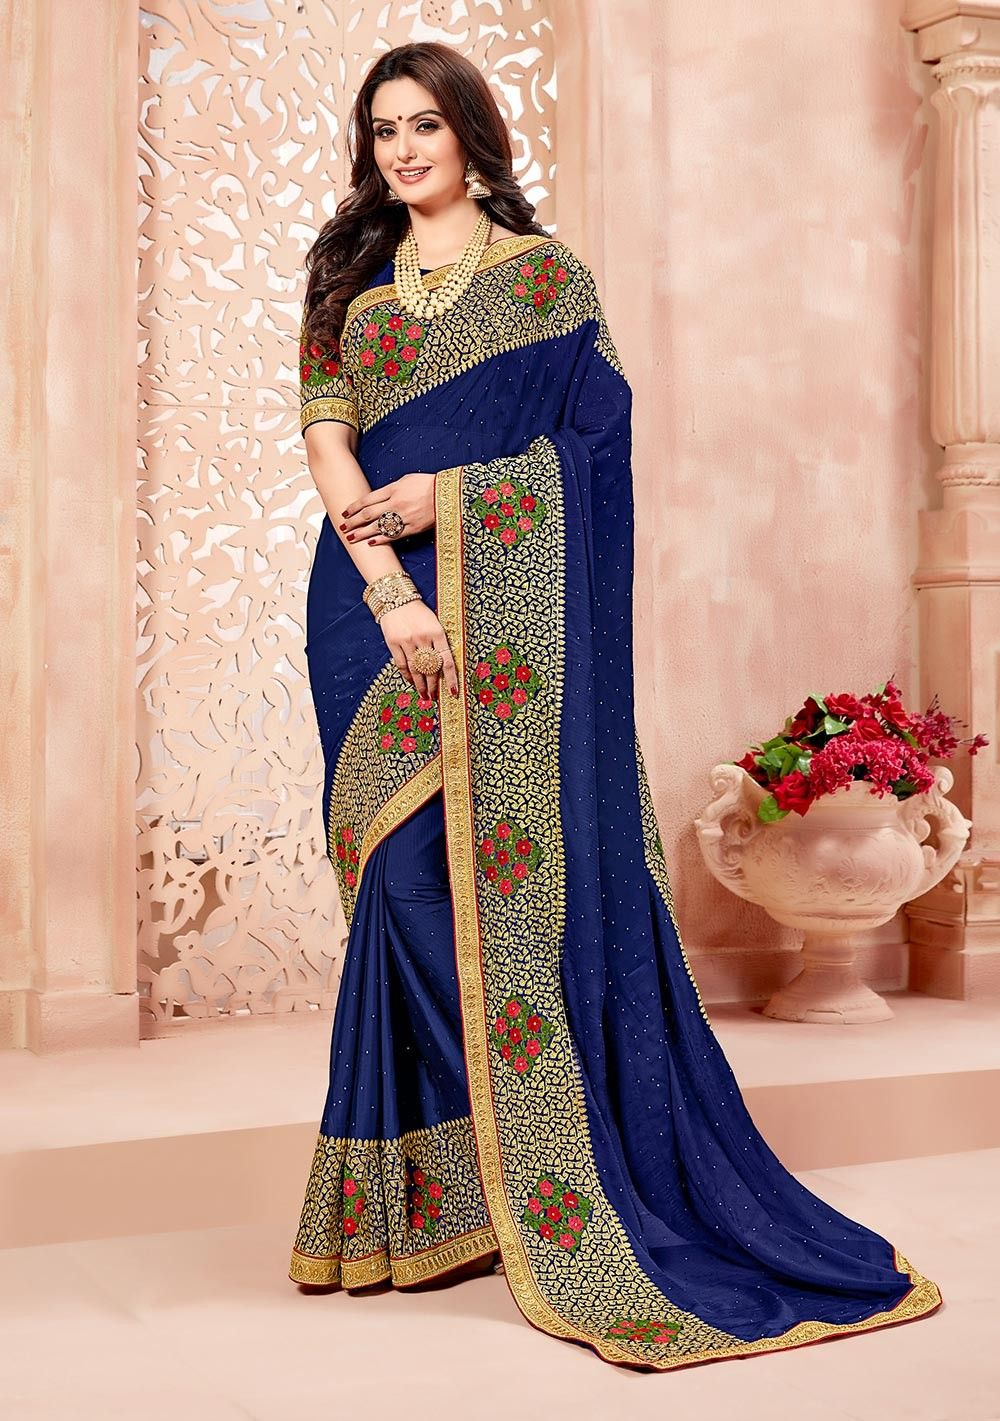 Simple New Saree Designs 2018 2019 Images Lacing In 2019